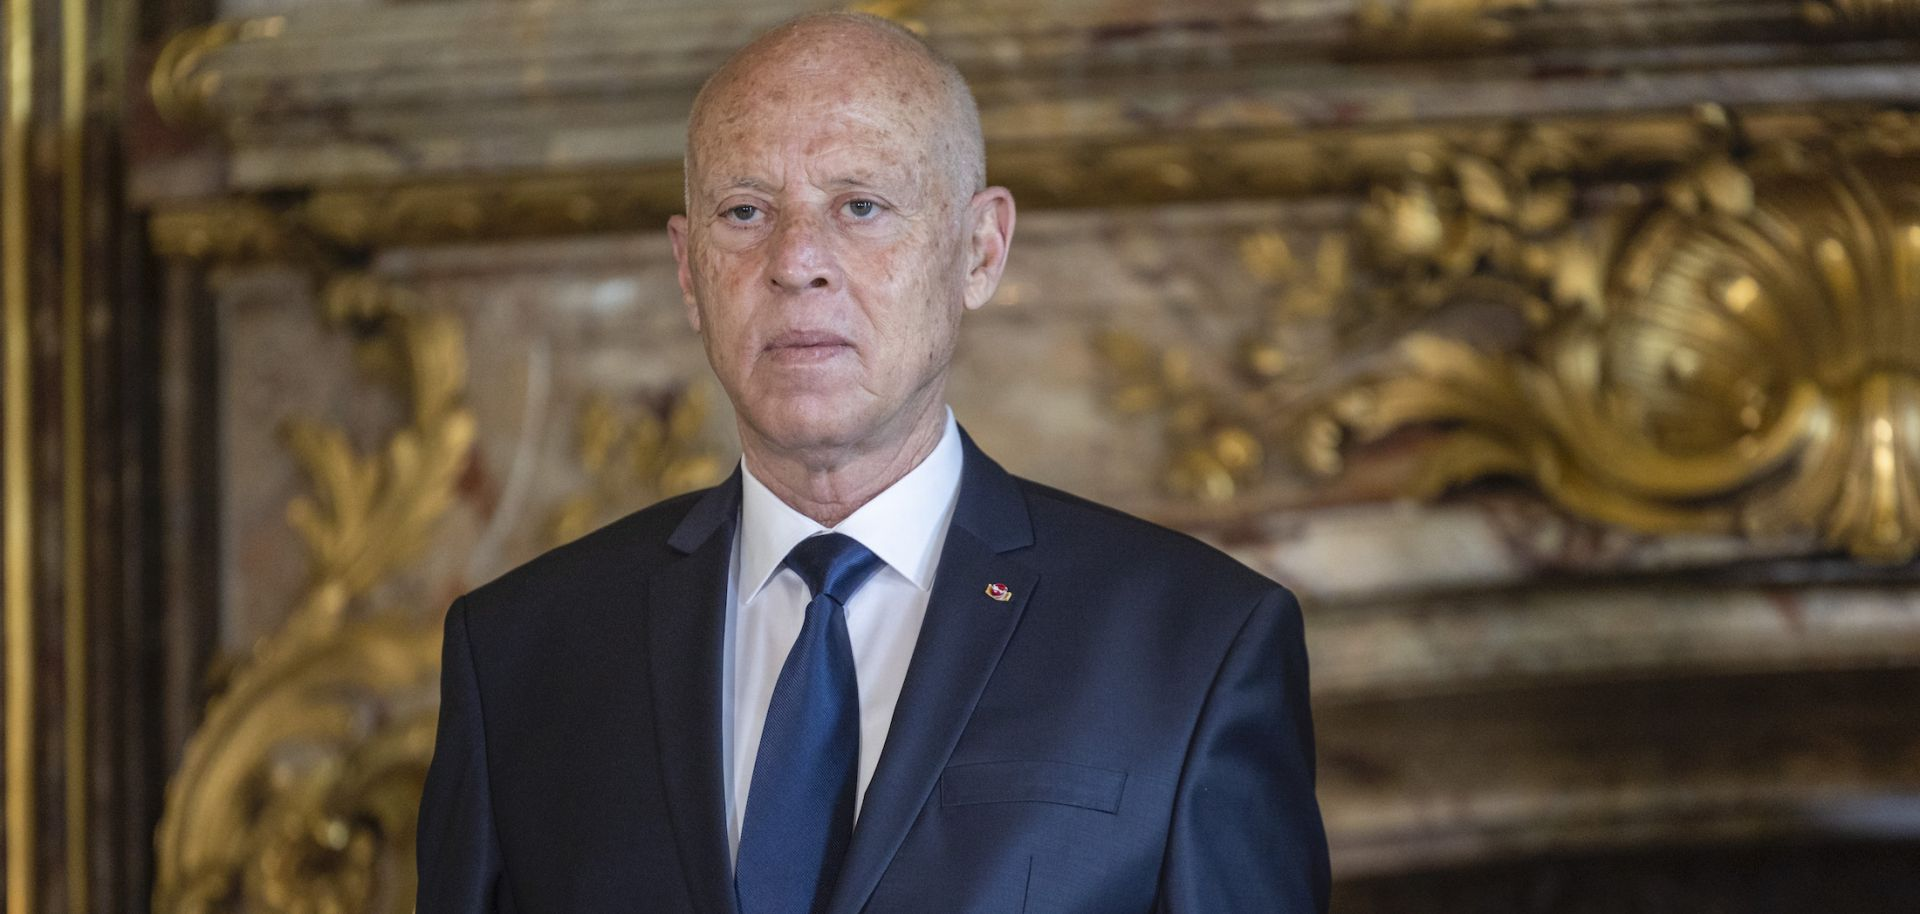 Tunisian President Kais Saied is seen at Belgium's Royal Palace in Brussels on June 3, 2021.